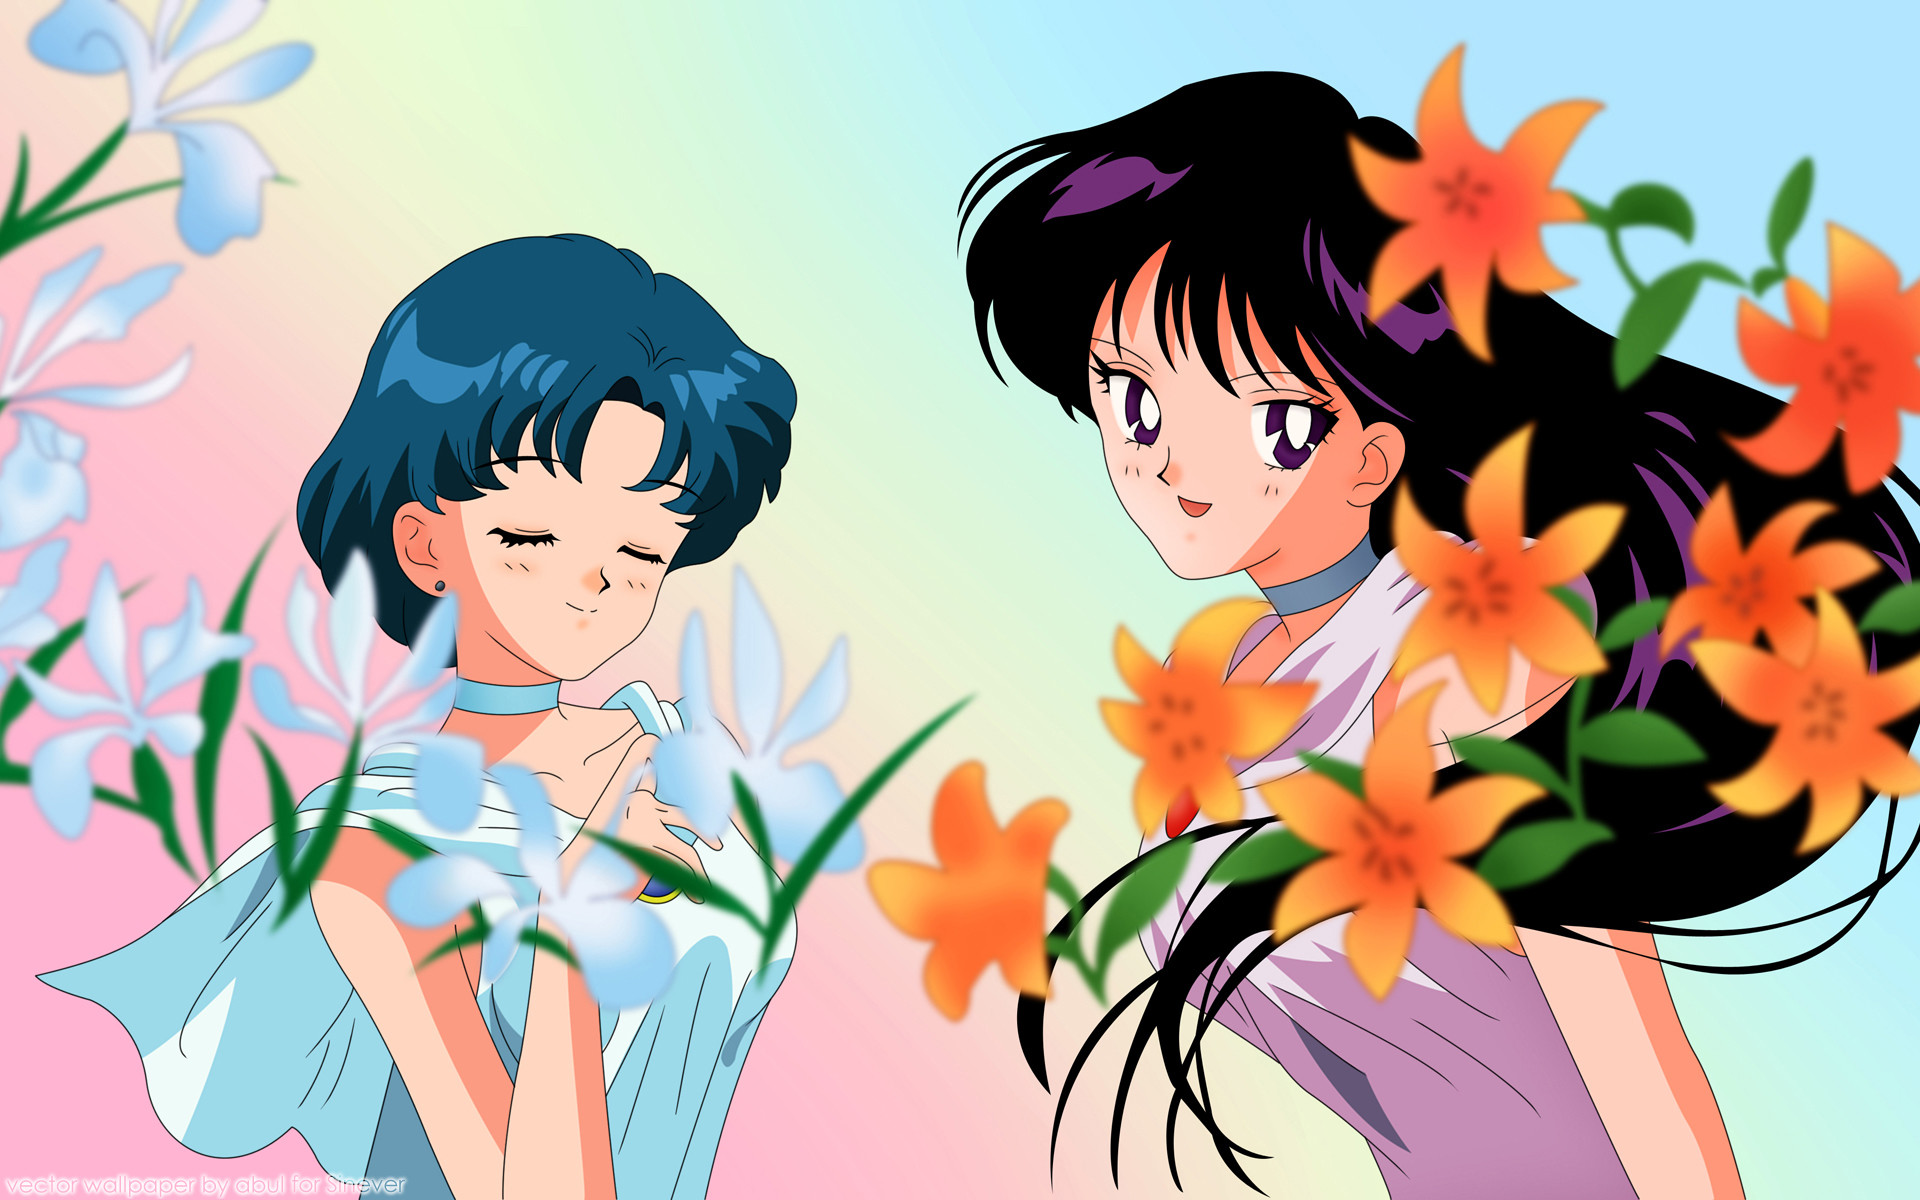 1920x1200 HD Wallpaper and background photos of Princess Mercury and Princess Mars  for fans of Sailor mercury and Sailor mars images.